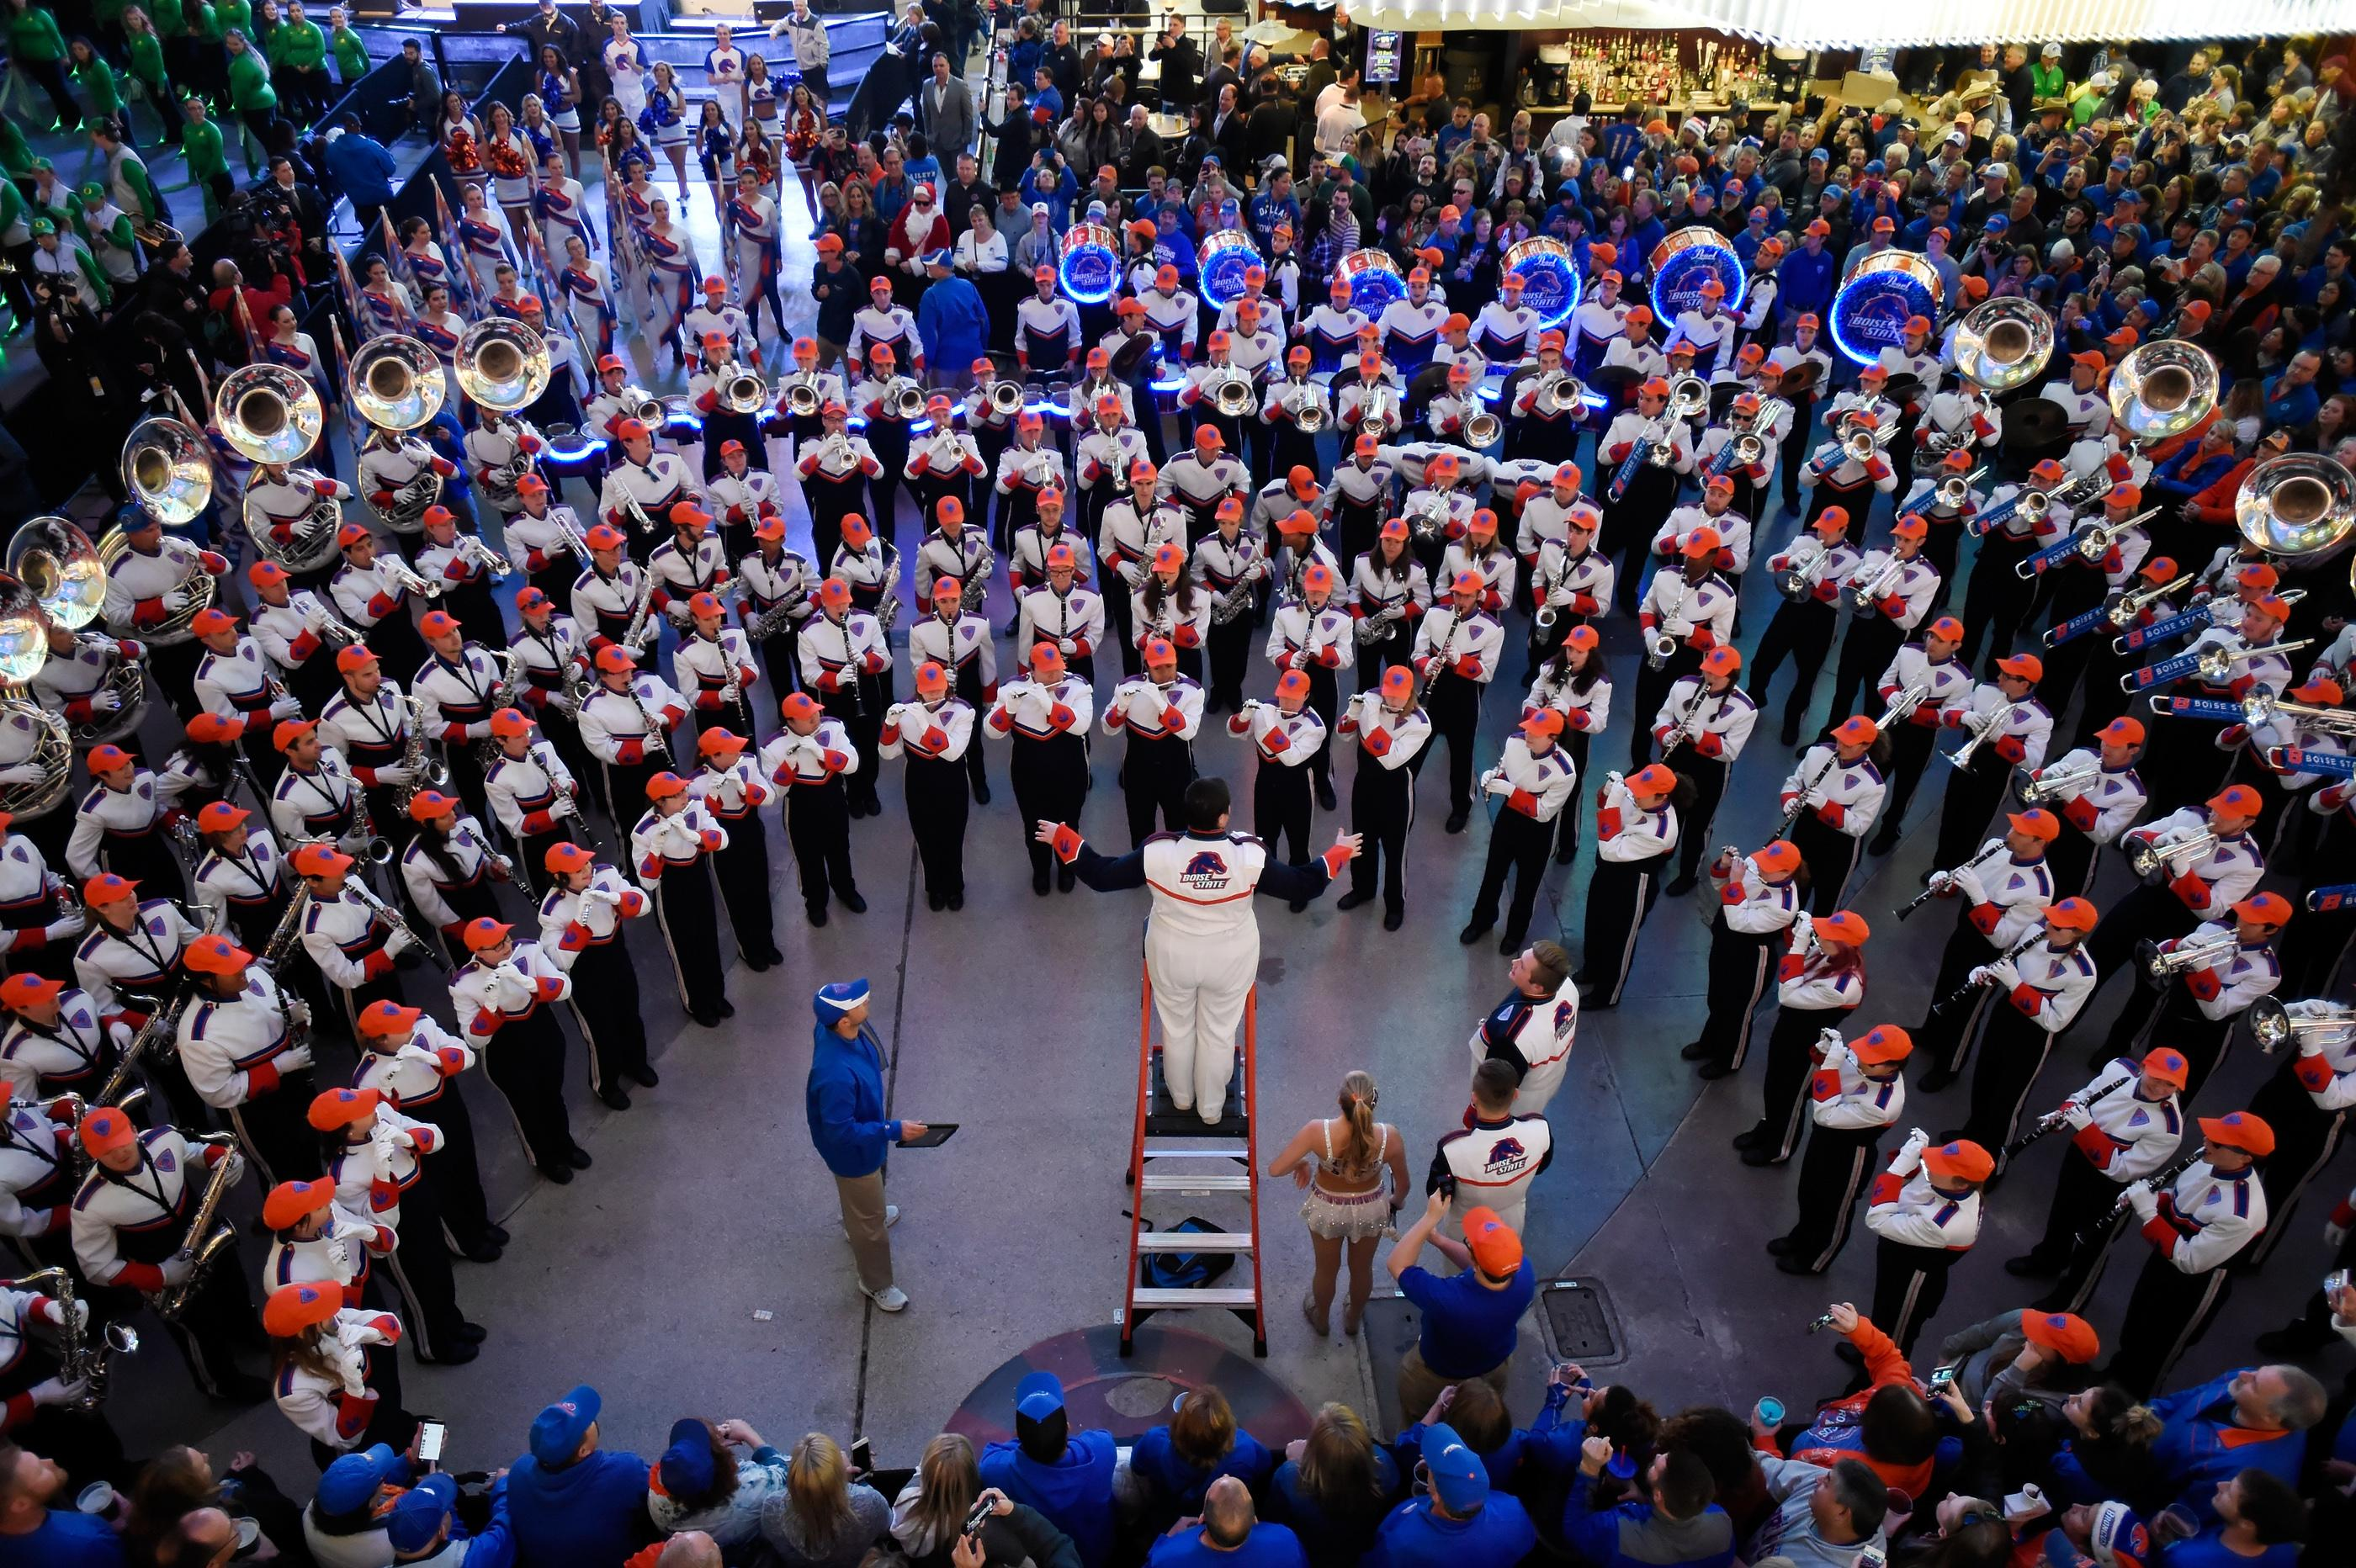 The Boise State marching band participates during a pep rally at the Fremont Street Experience Friday, Dec. 15, 2017, in Las Vegas. The Boise State Bronco will take on the Oregon Ducks in the 26th edition of the Las Vegas Bowl at Sam Boyd Stadium on Saturday. CREDIT: David Becker/Las Vegas News Bureau